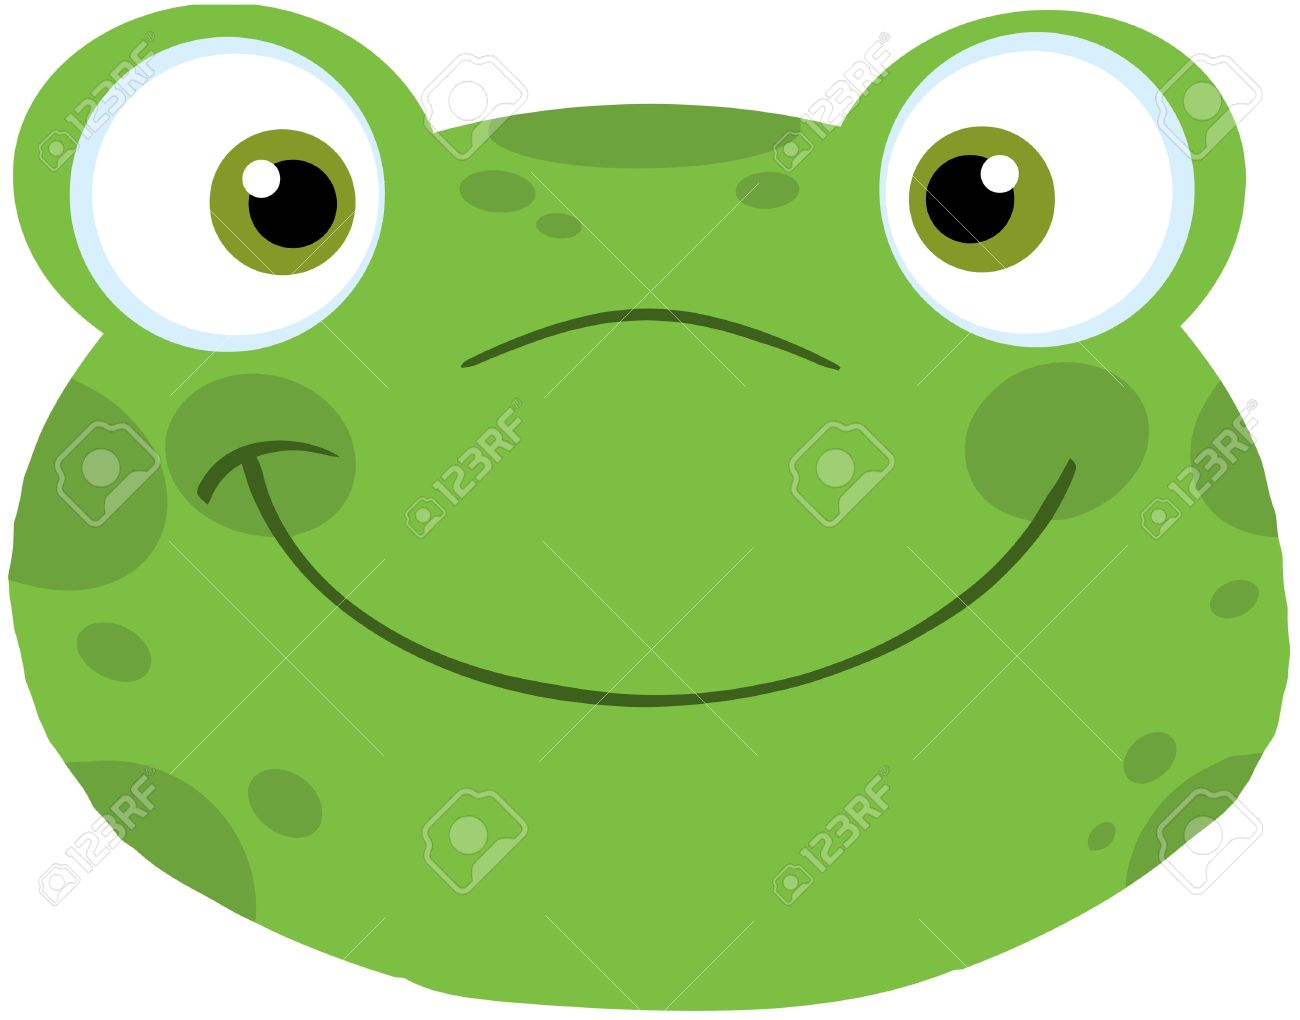 Cute Frog Smiling Head Stock Vector - 19986684